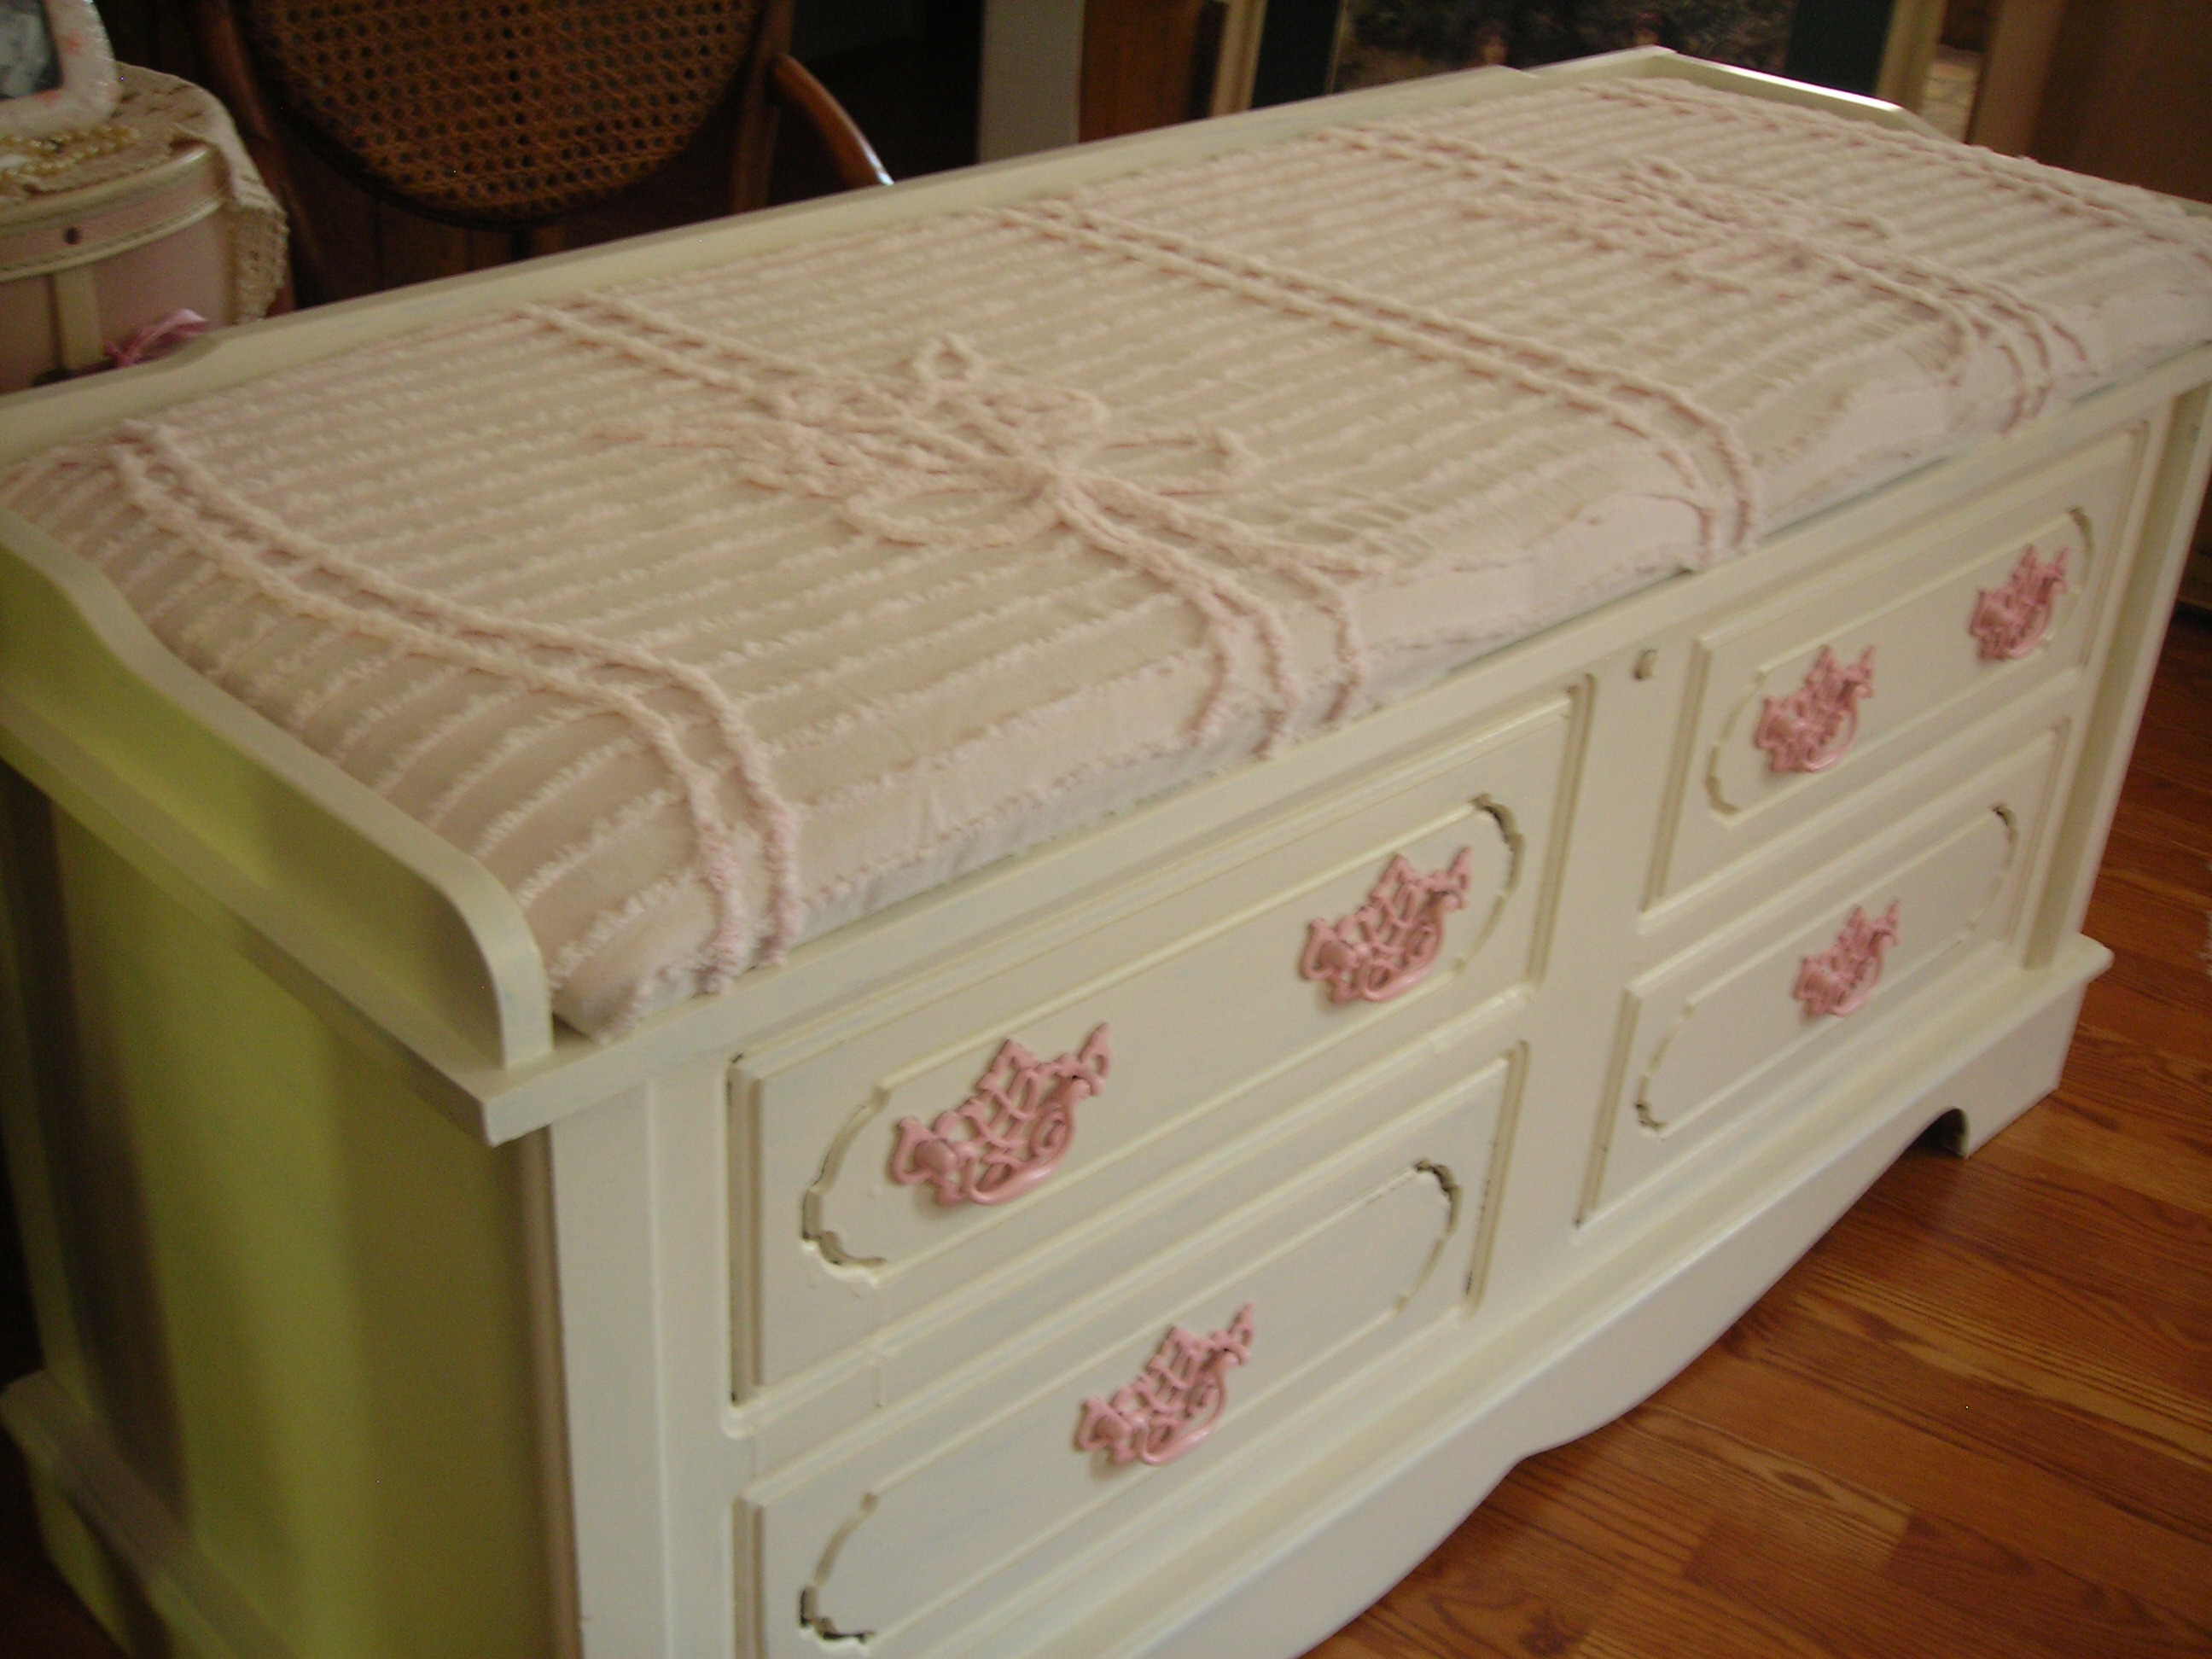 and for the seat, i recovered it with a yummy vintage pink chenille bedspread cutter.